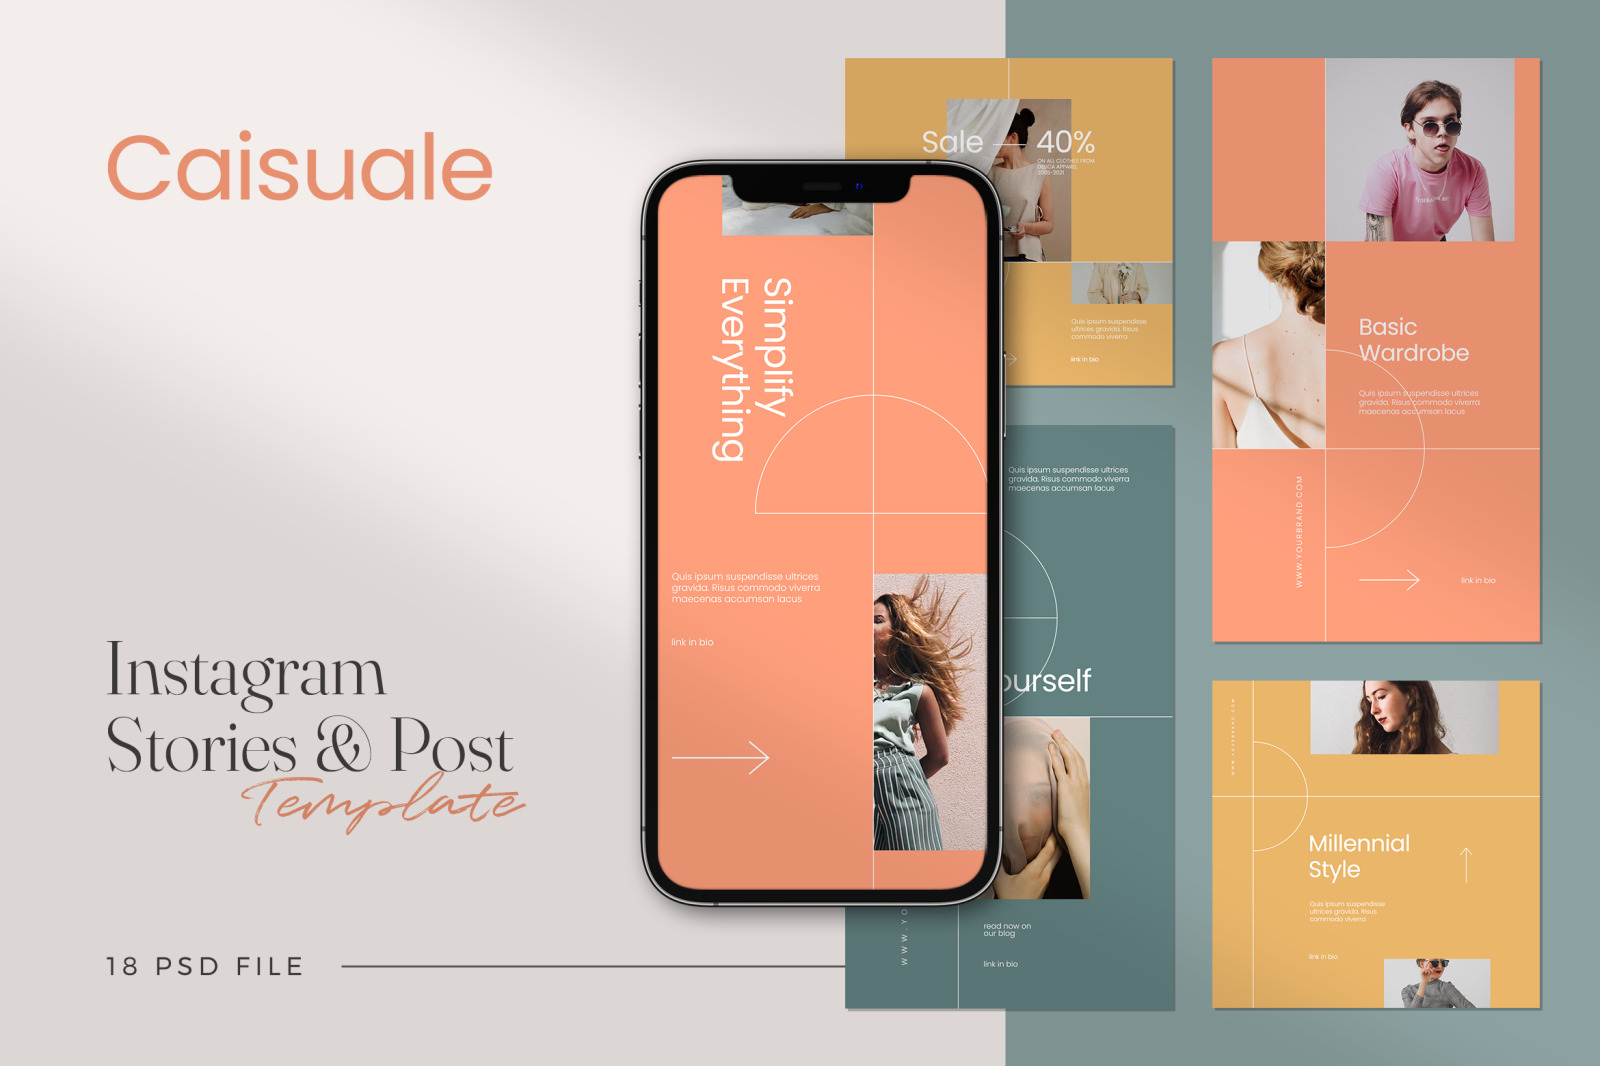 Caisuale - Minimalist Instagram Stories & Post